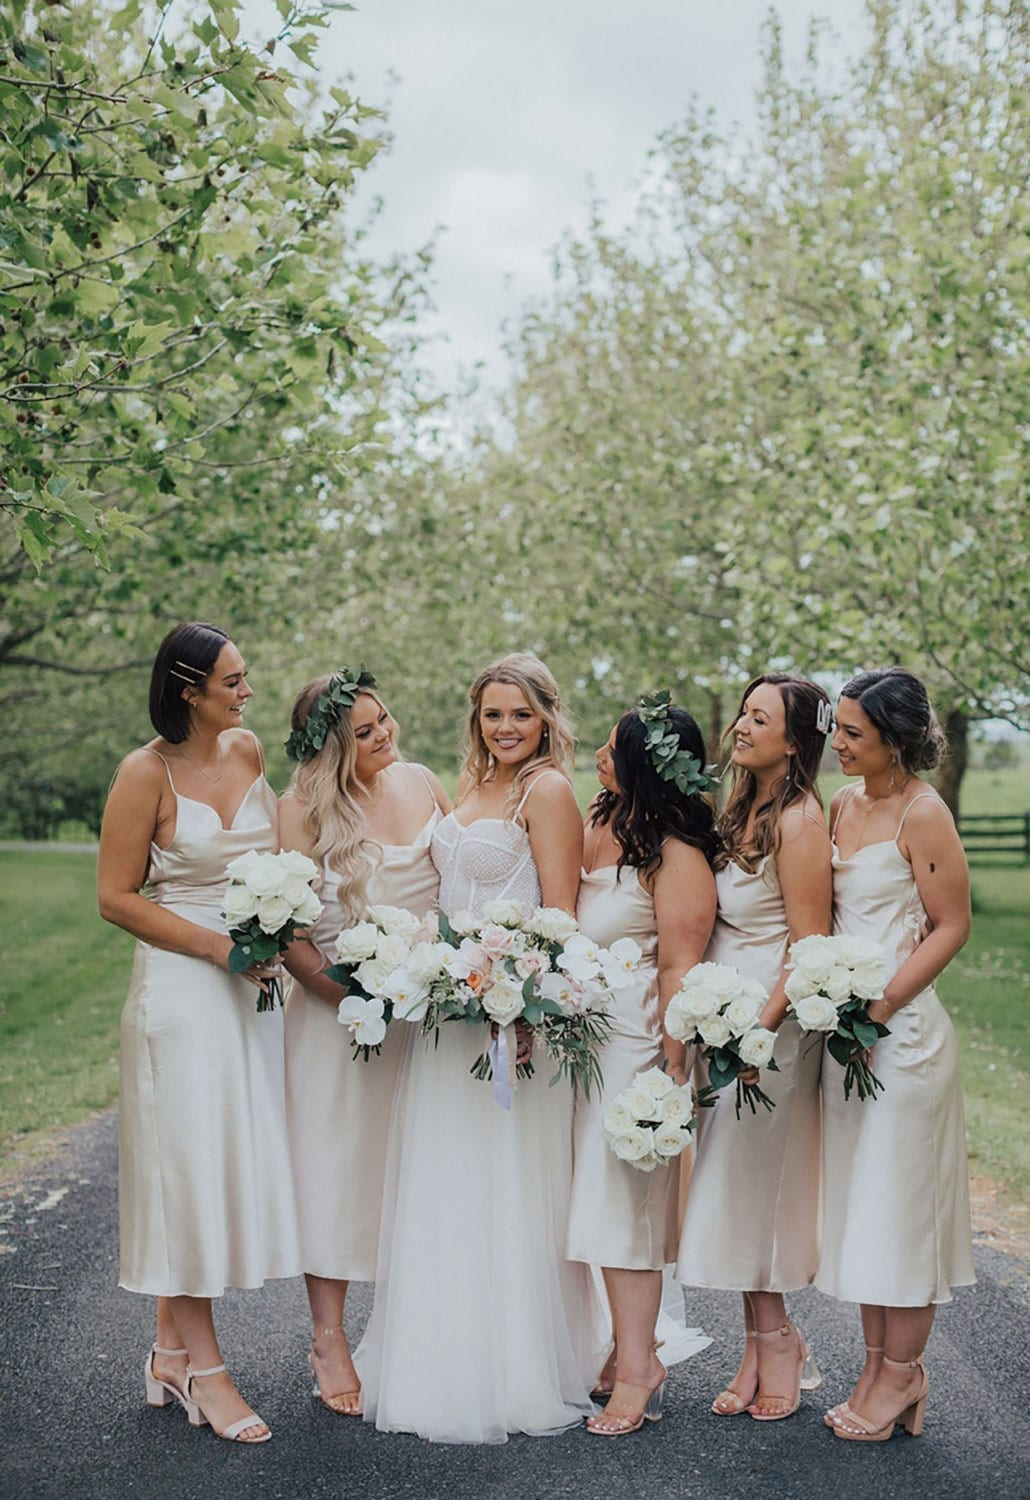 Vinka Design Features Real Weddings - bride wearing custom made gown with two different beadings incorporated into a fitted, structured bodice, and dreamy layered tulle skirt. Bride and bridesmaids surrounded by blossom